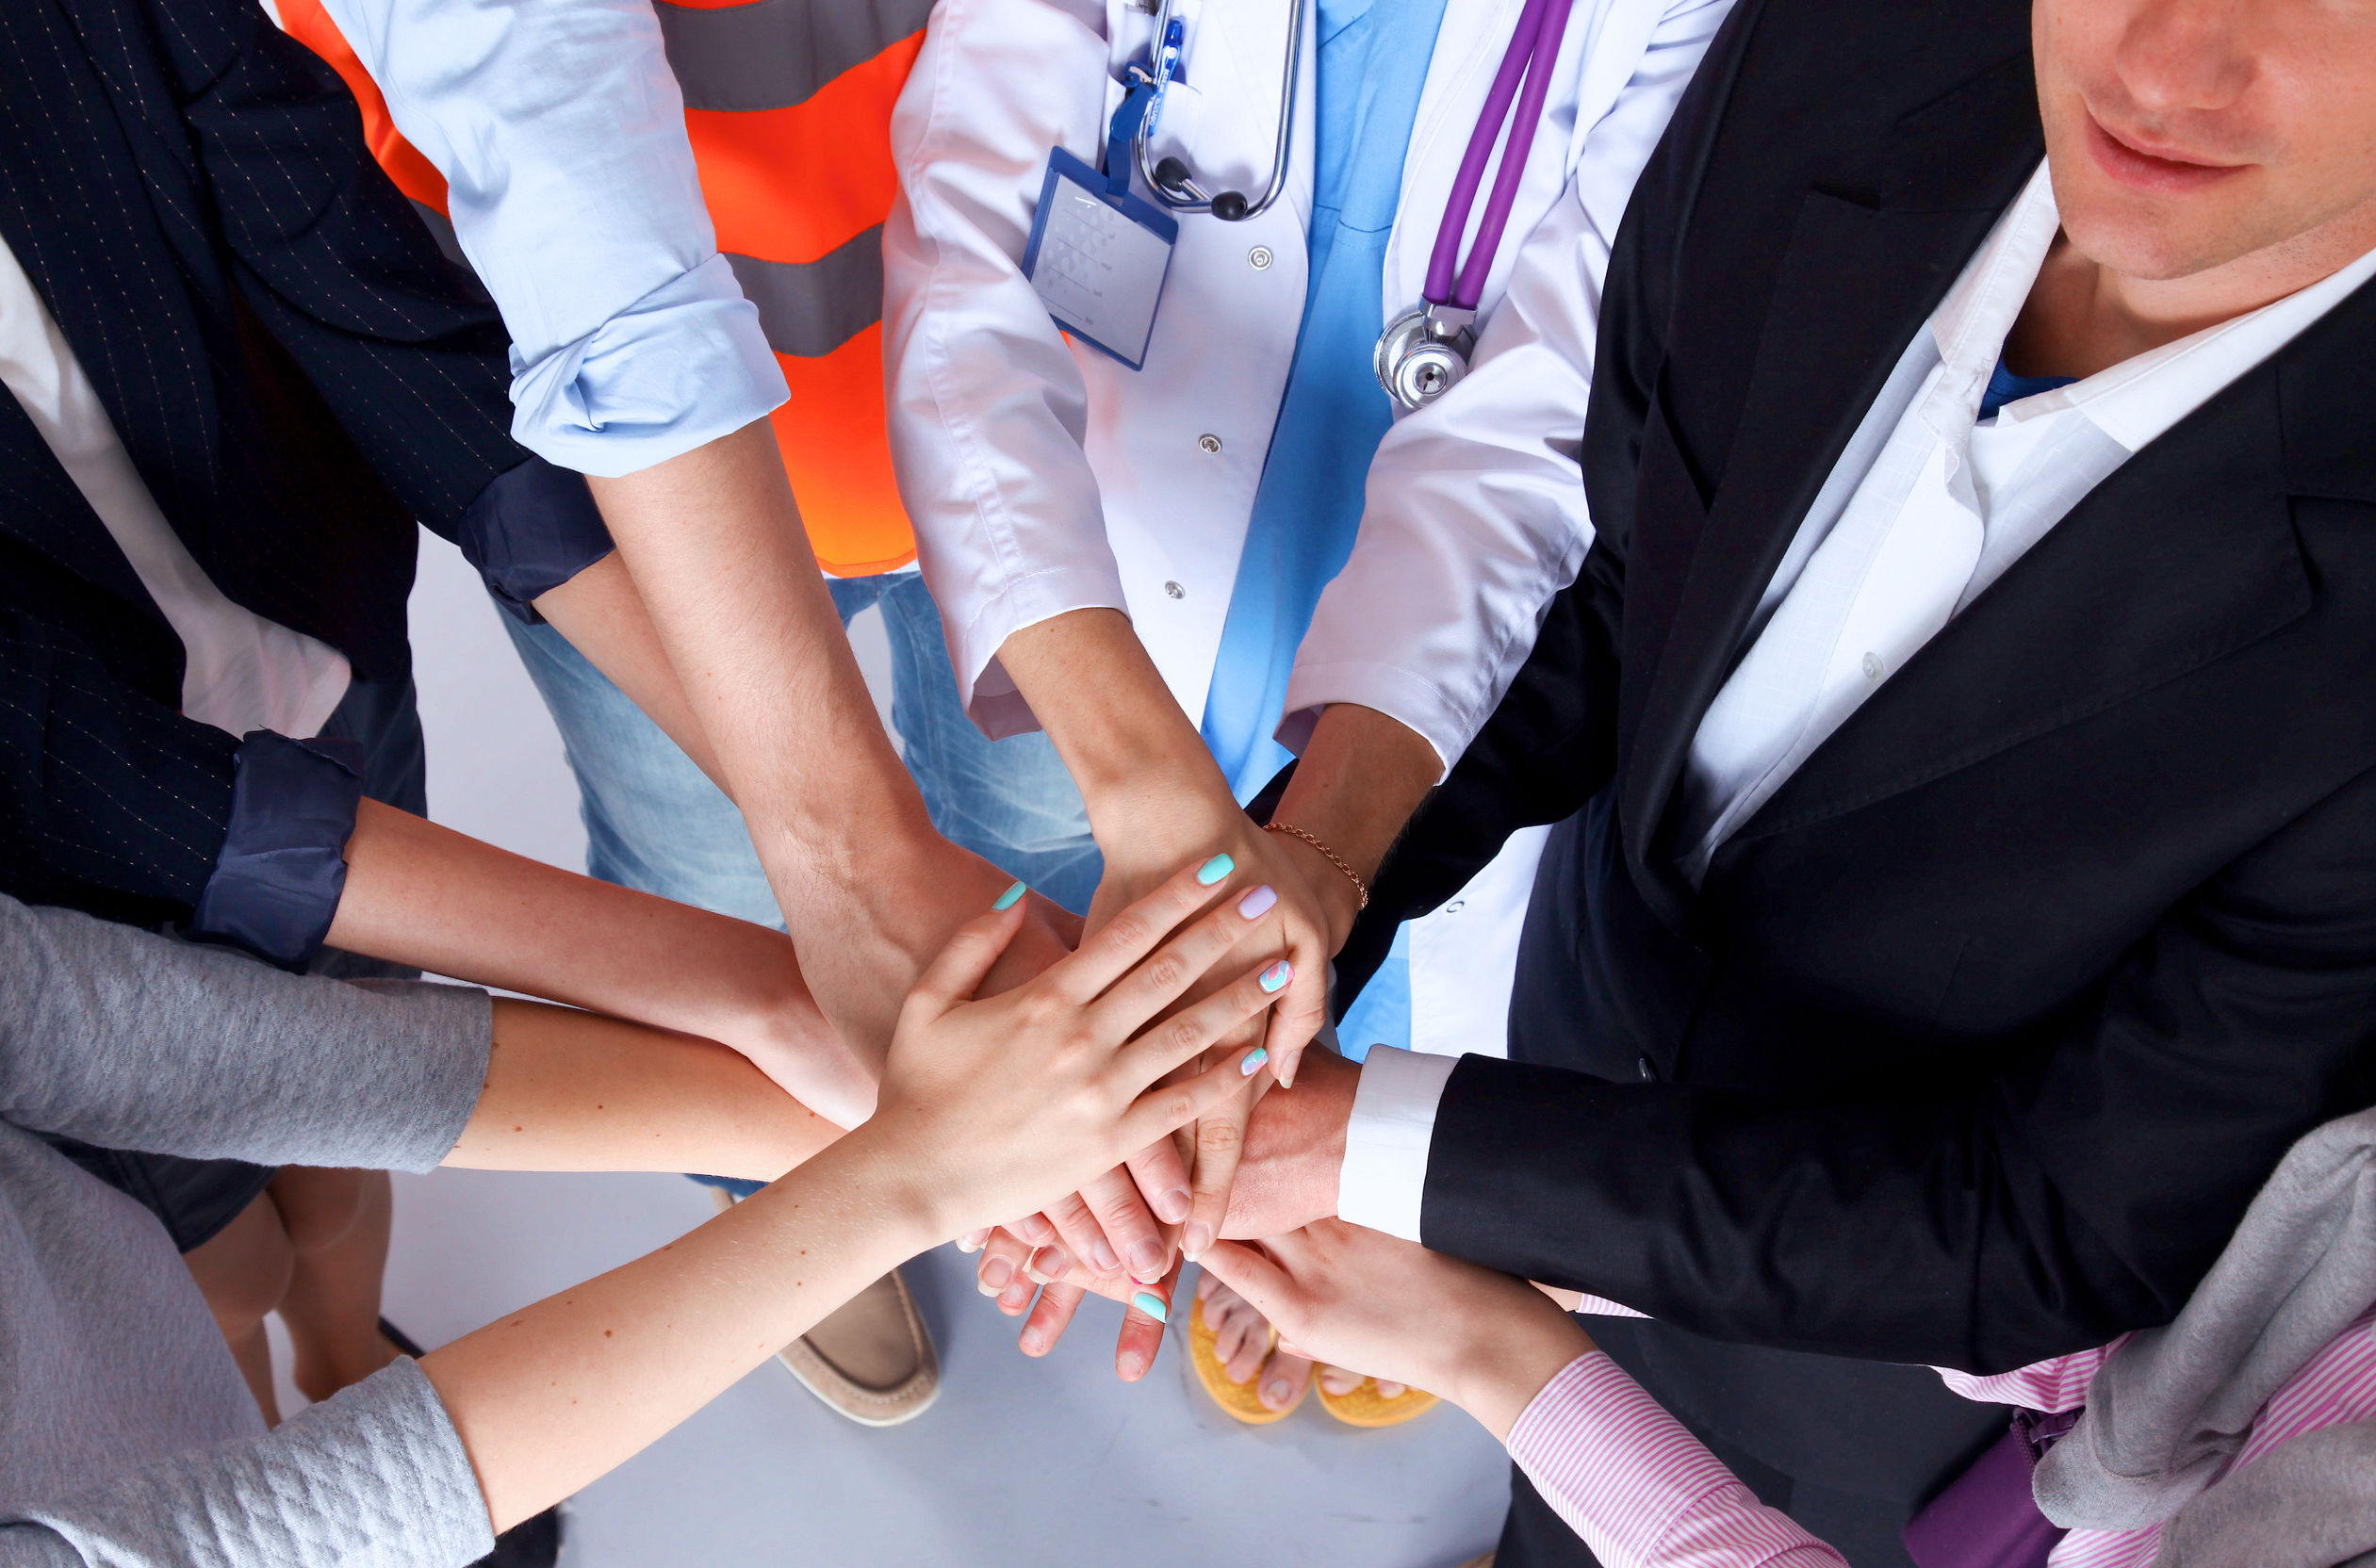 Occupational health nurses make a difference in various industries and with all types of workers